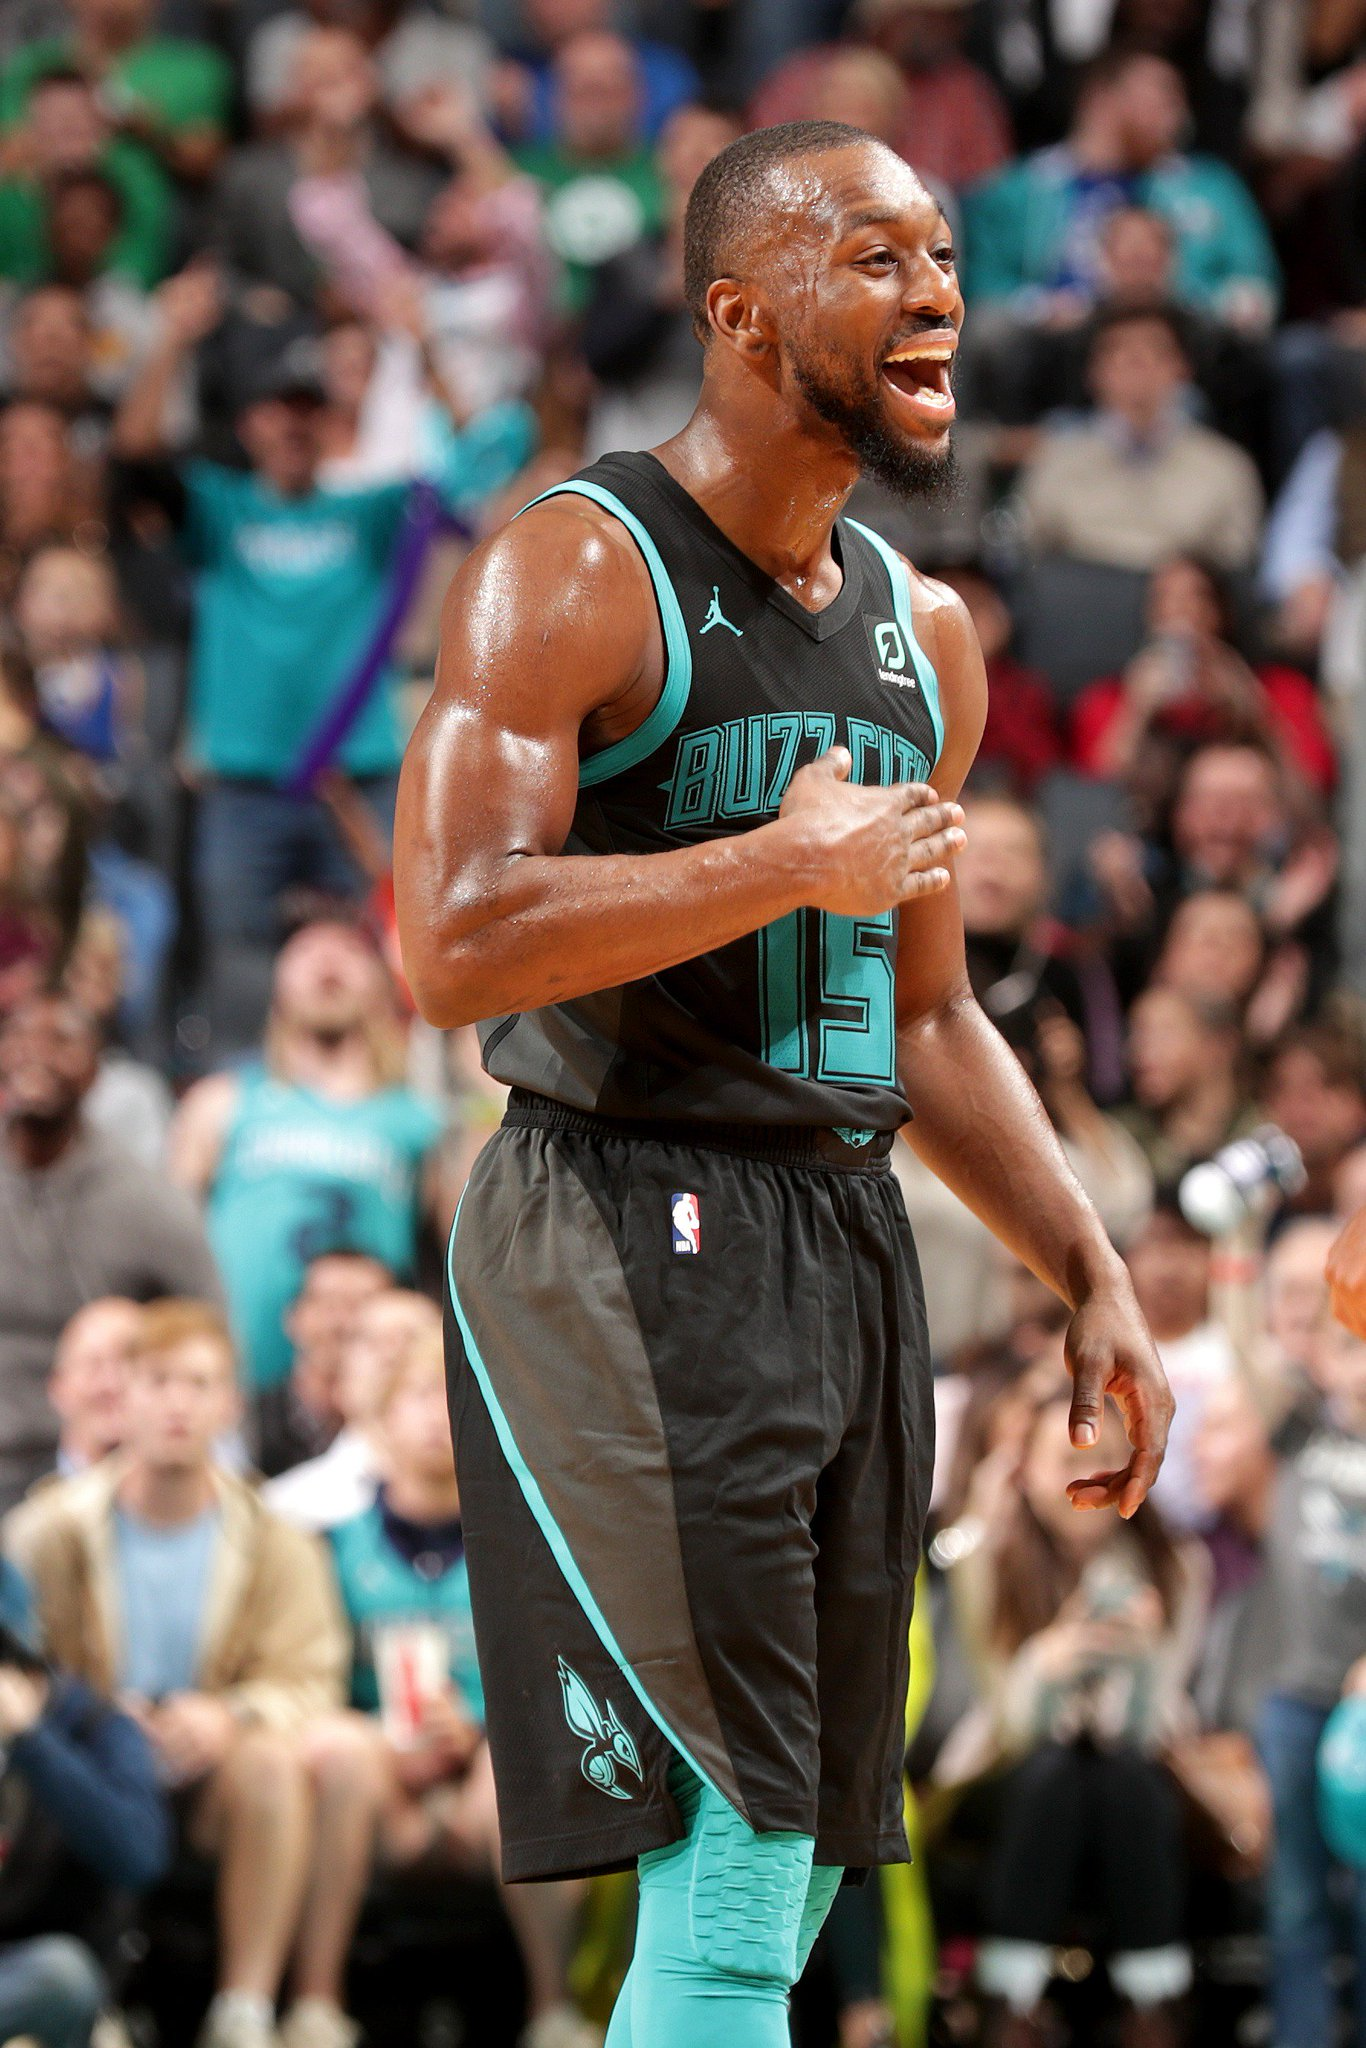 Kemba Walker has scored 103 PTS over his last 2 games.  That's an average of 51.5 PPG.  #Hornets30 https://t.co/95s904an3x